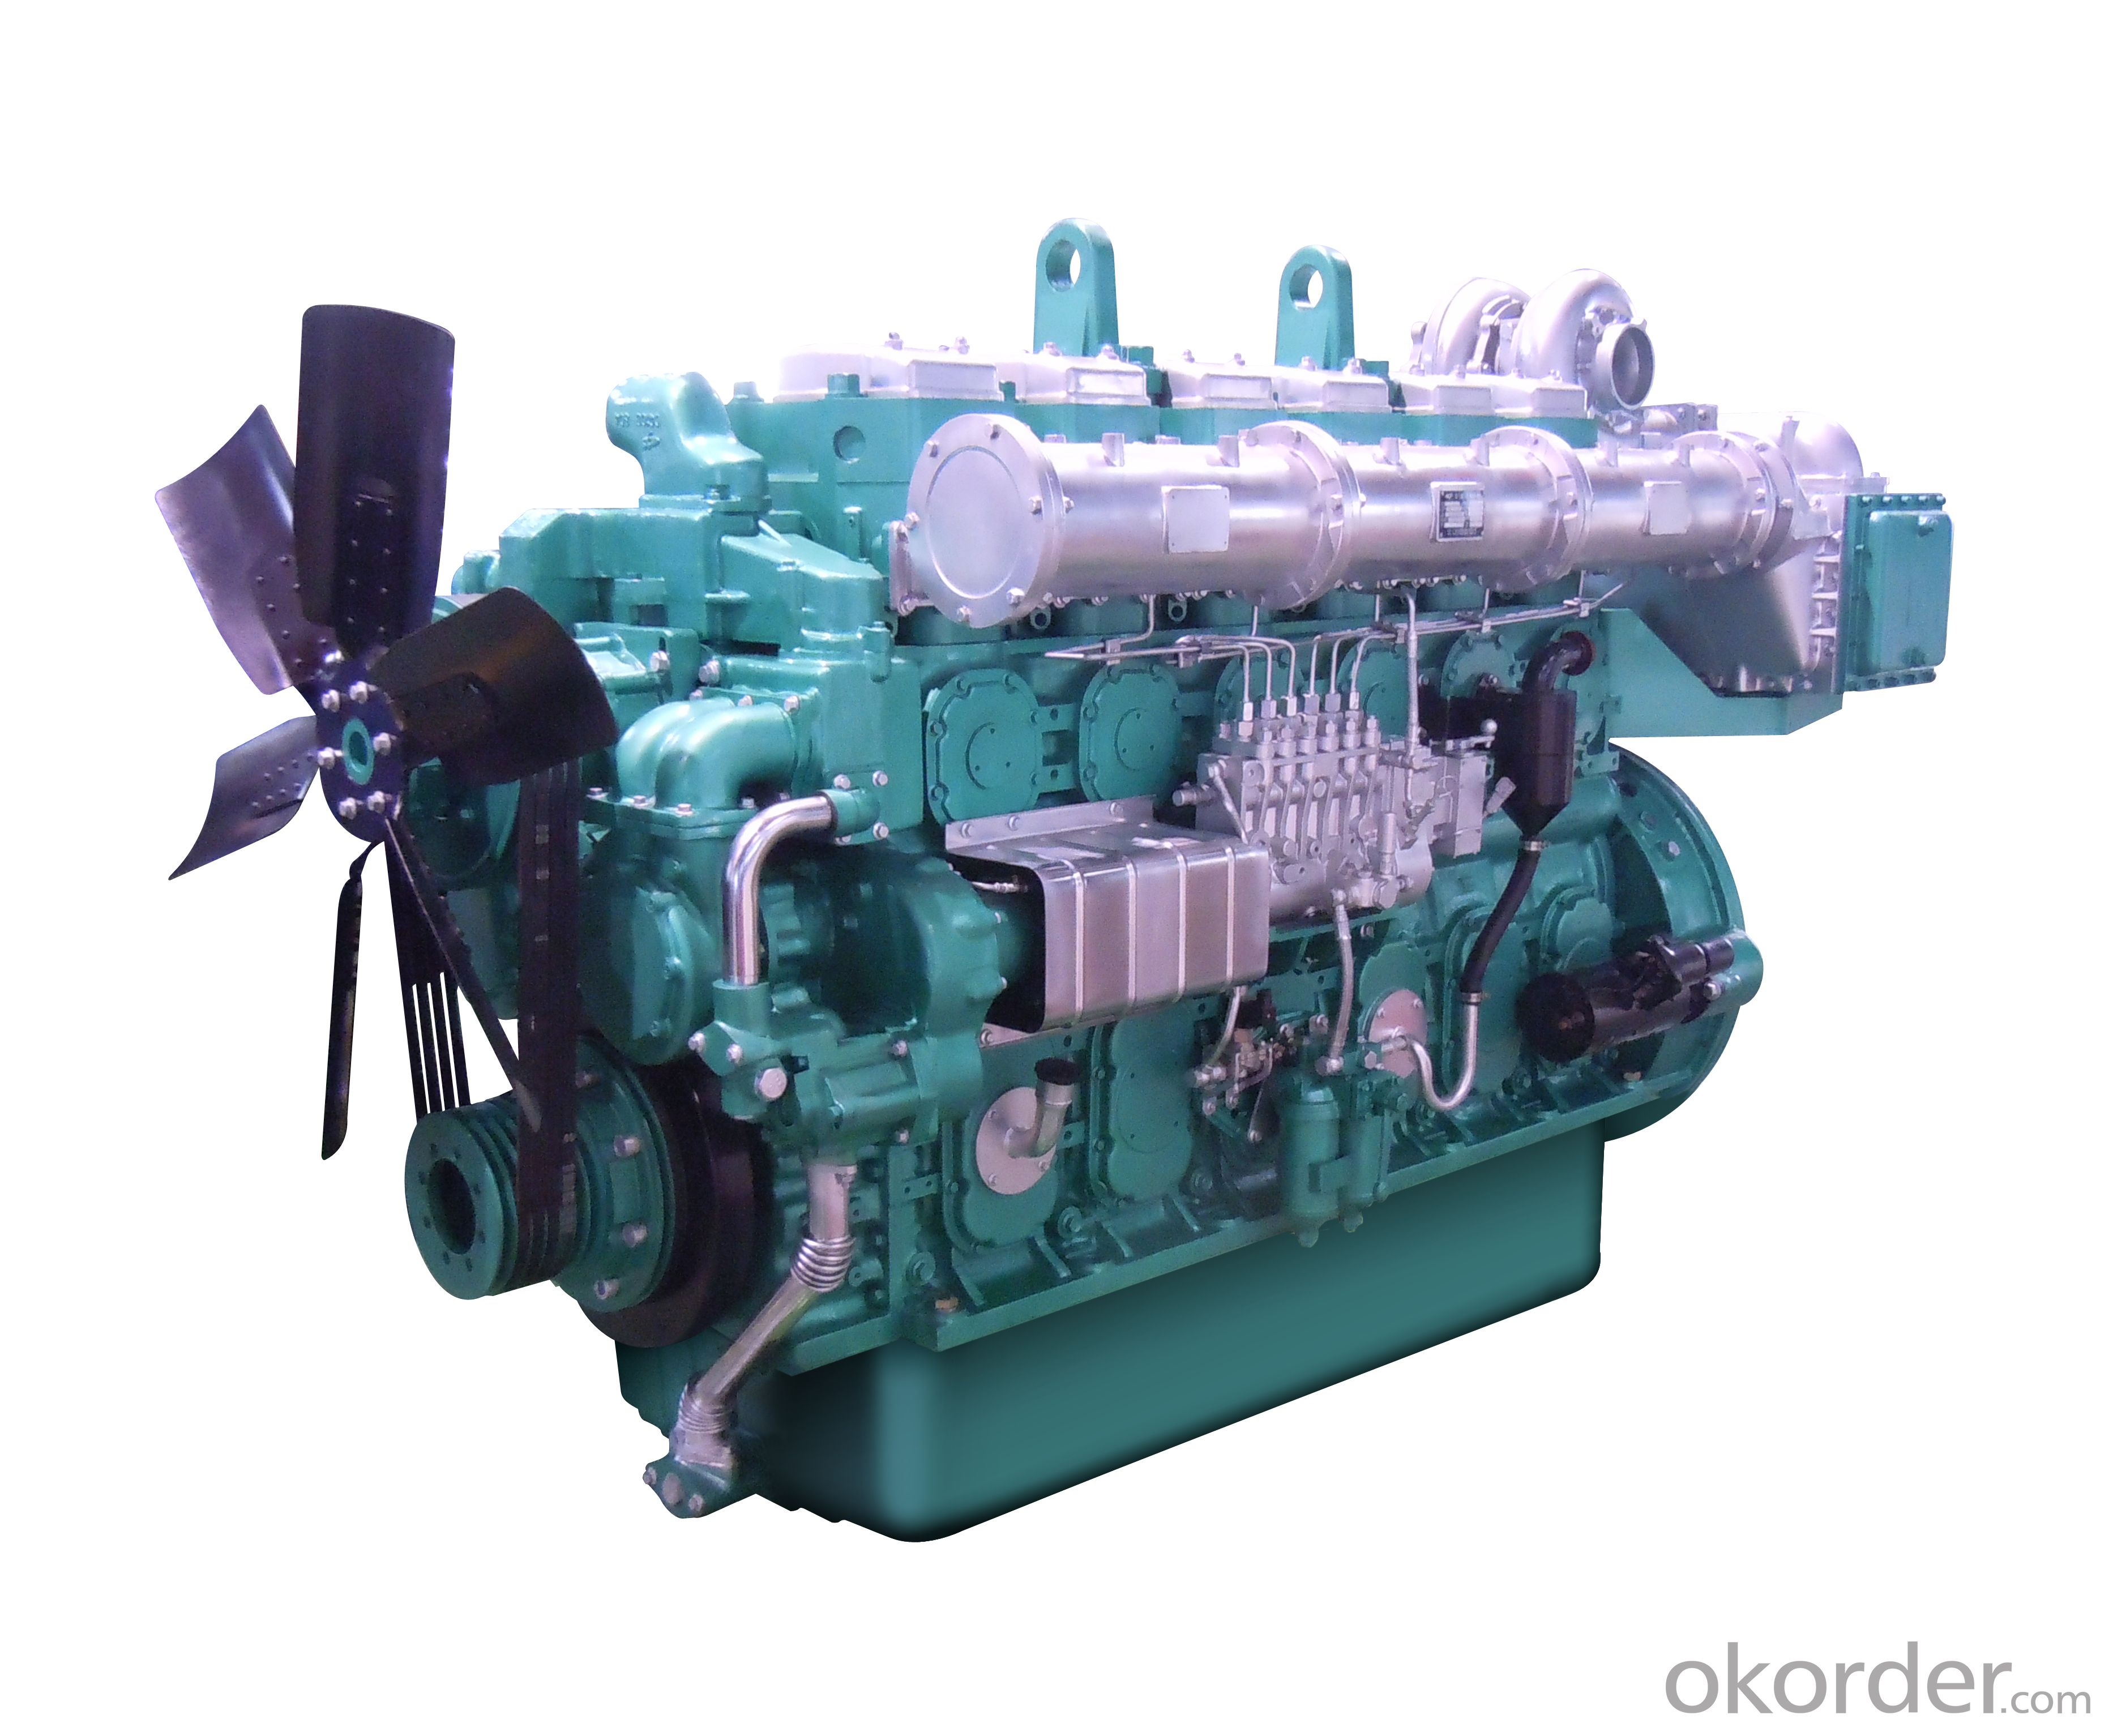 Yuchai YC6C (600-800kW) Series Engines for Generators